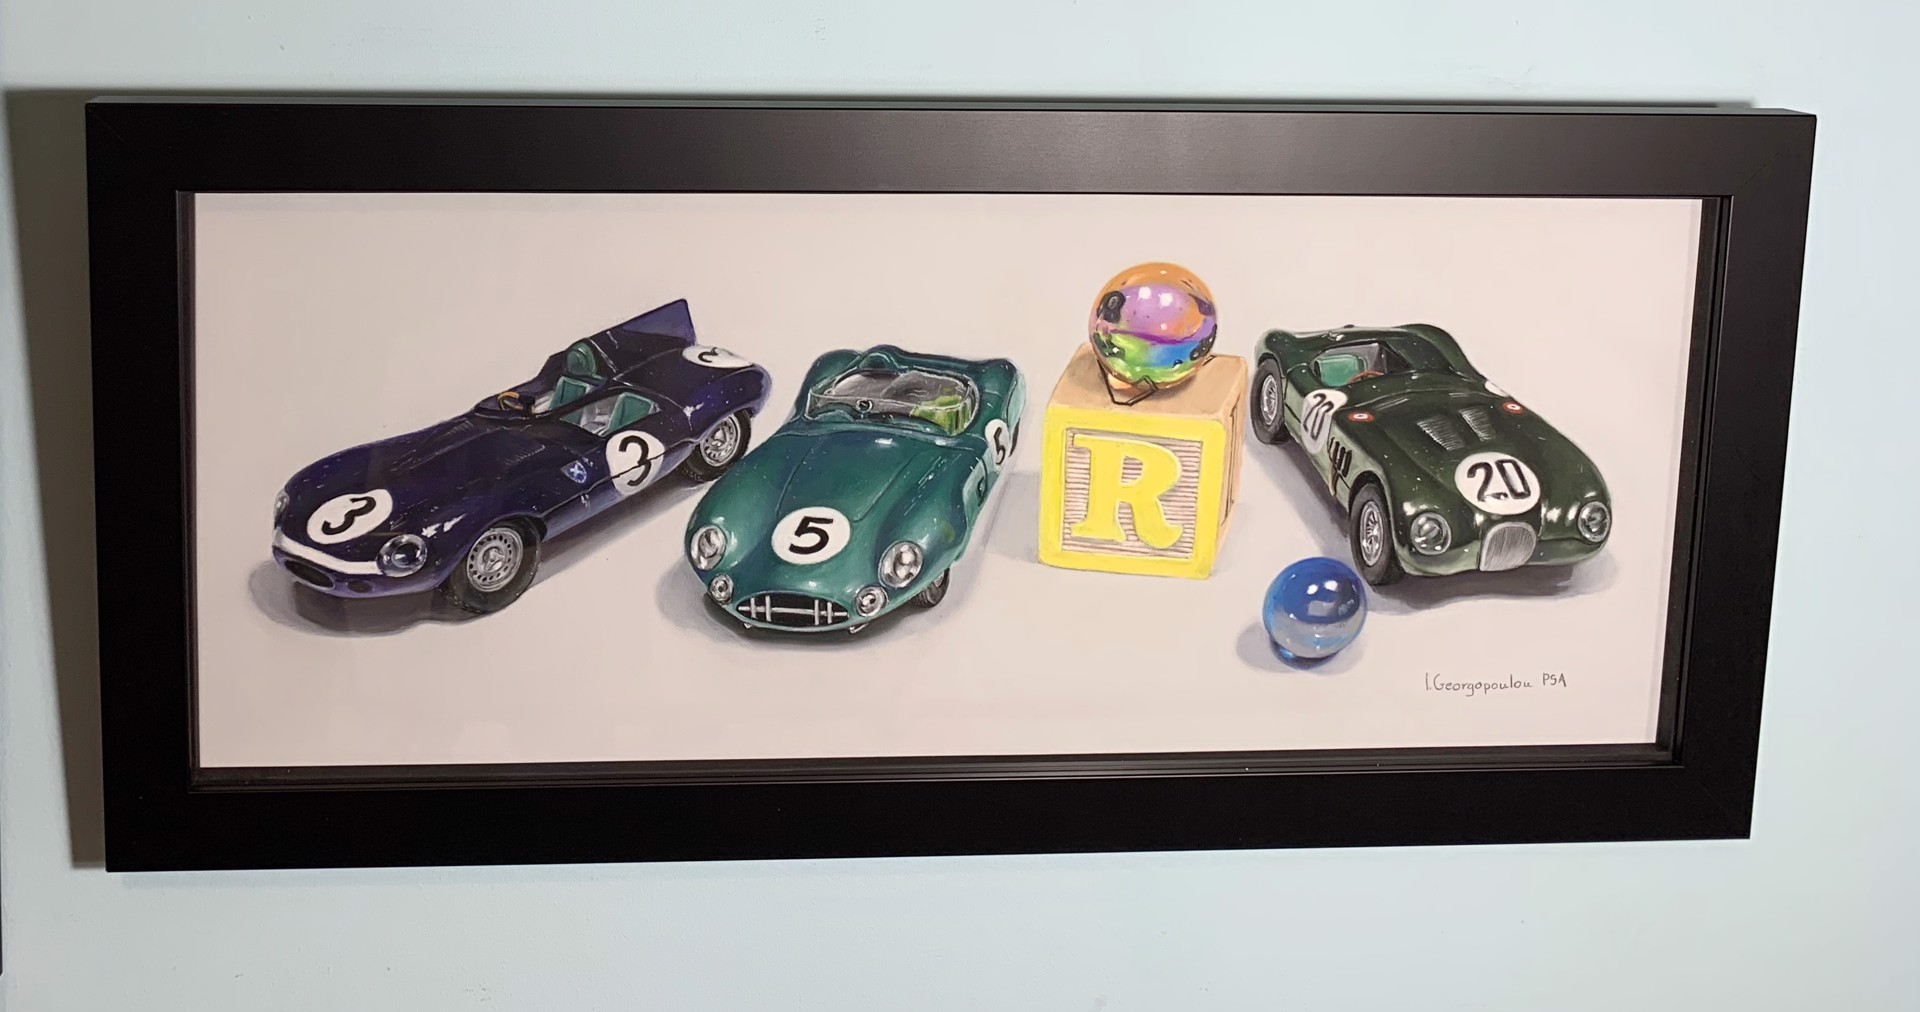 R is for Race by Irene Georgopoulou